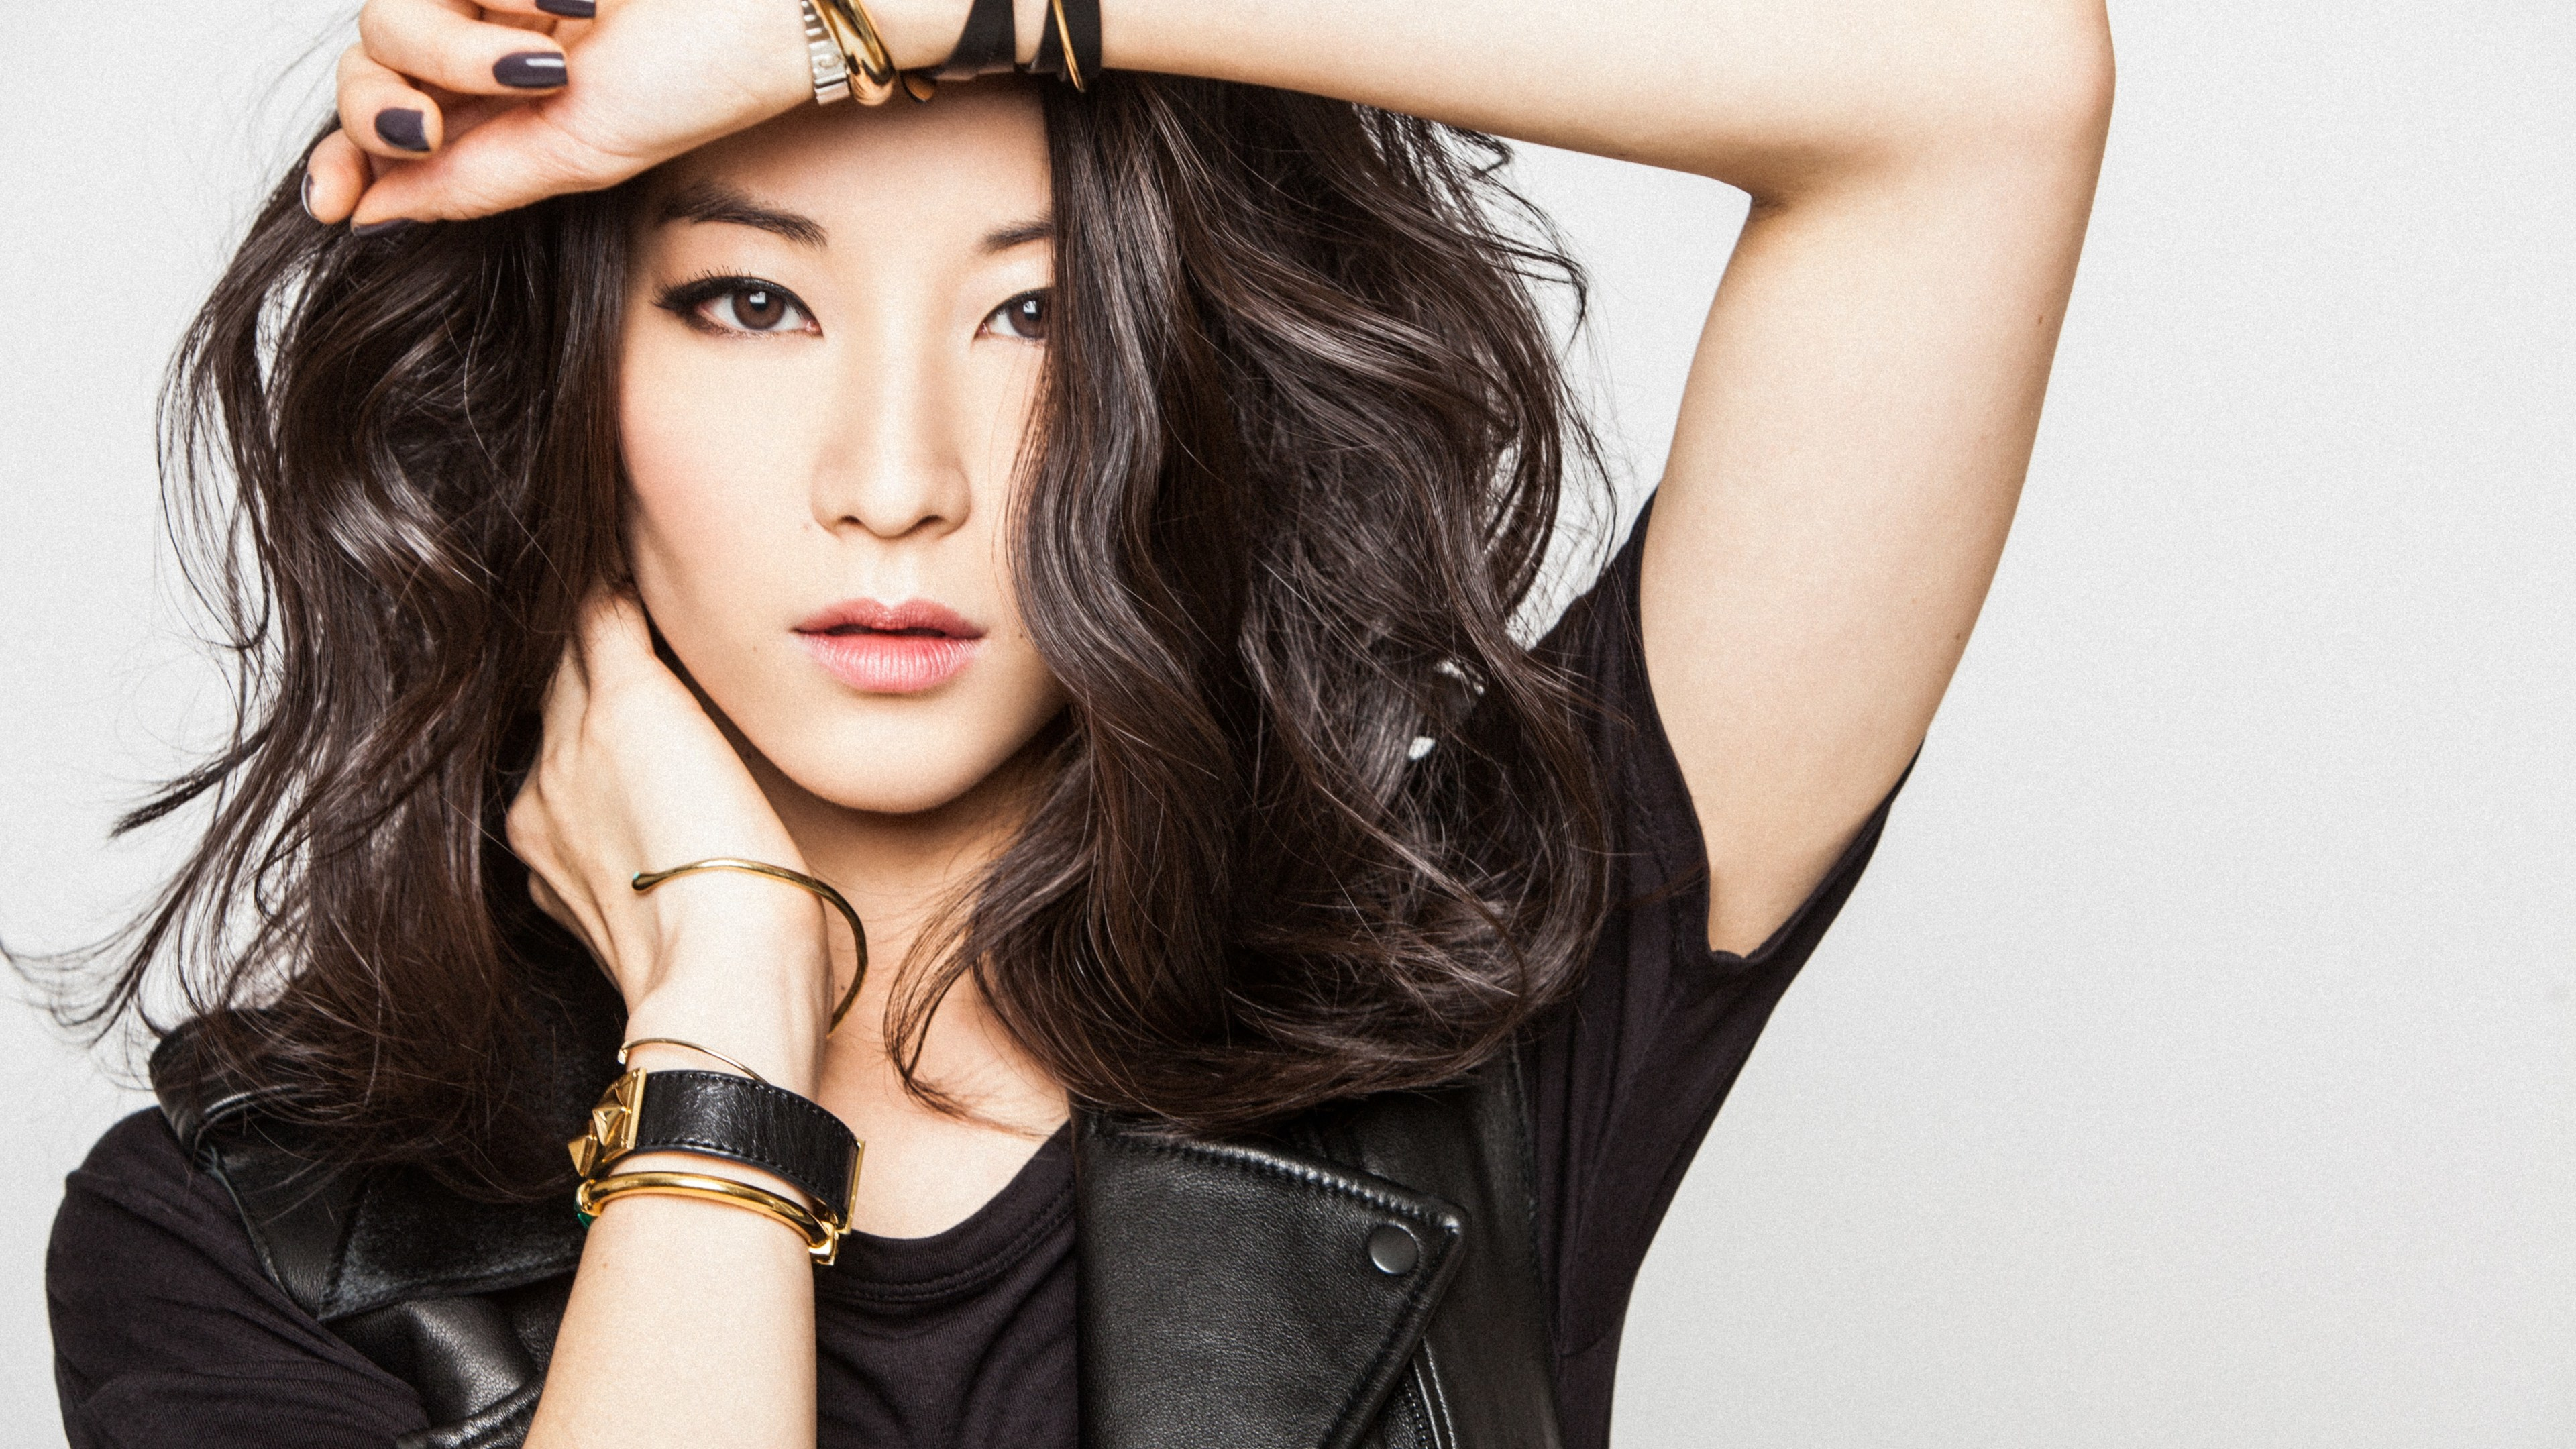 3840x2160 - Arden Cho Wallpapers 24